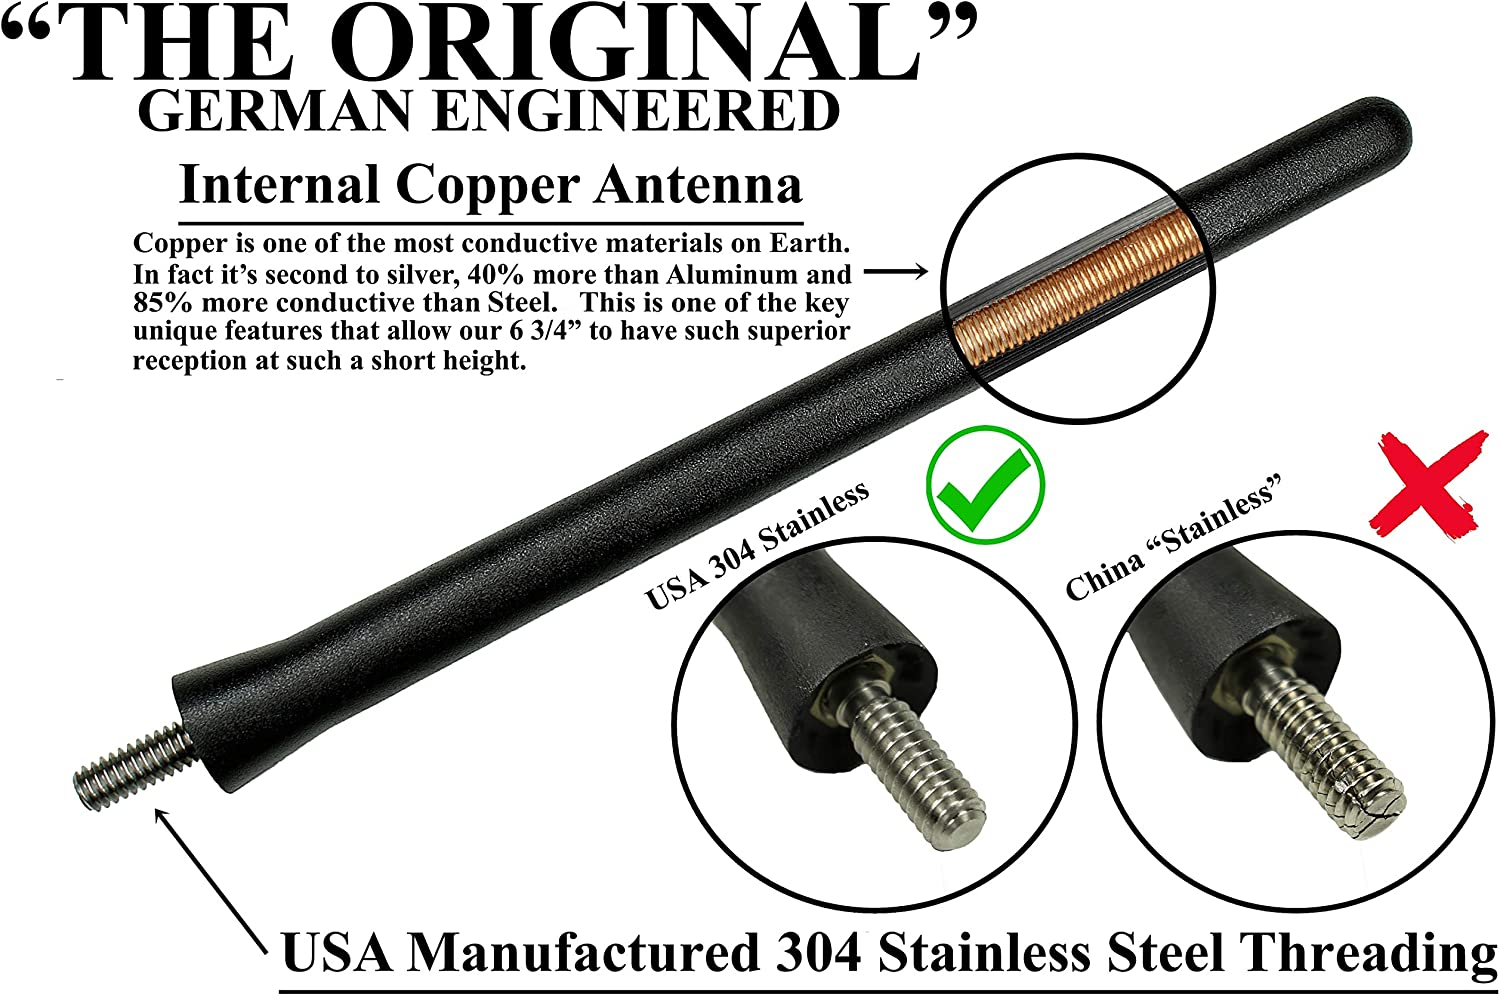 13 Inch All-Terrain Flexible Rubber Fender Antenna is Compatible with Hummer H2 - Spring Steel Internal Core 2003-2009 AntennaMastsRus